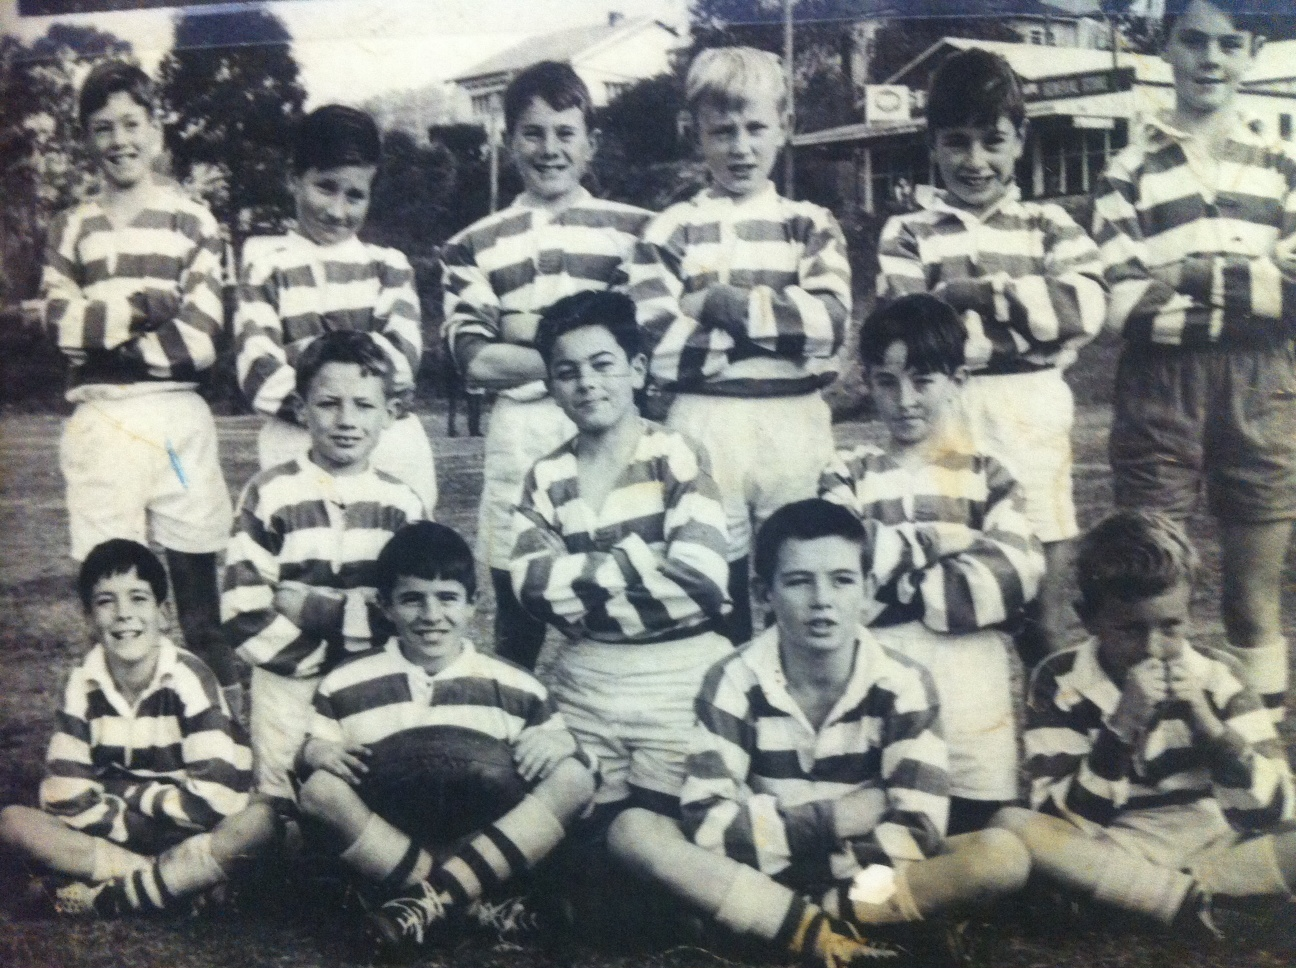 Bosco 1965 Original squad.jpg